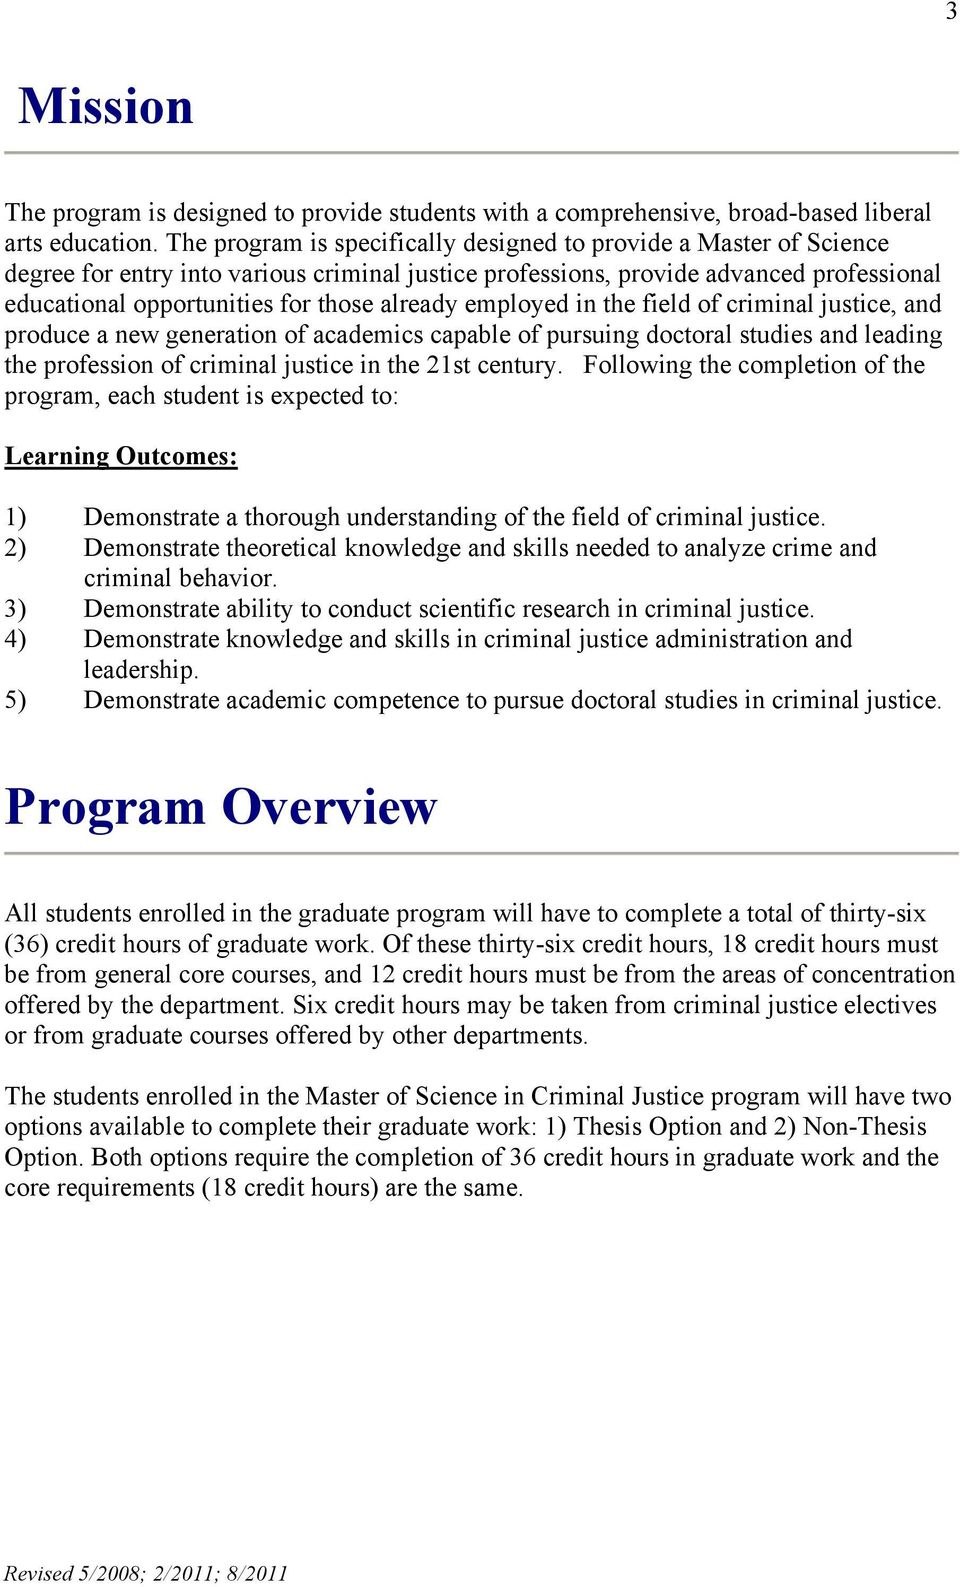 already employed in the field of criminal justice, and produce a new generation of academics capable of pursuing doctoral studies and leading the profession of criminal justice in the 21st century.